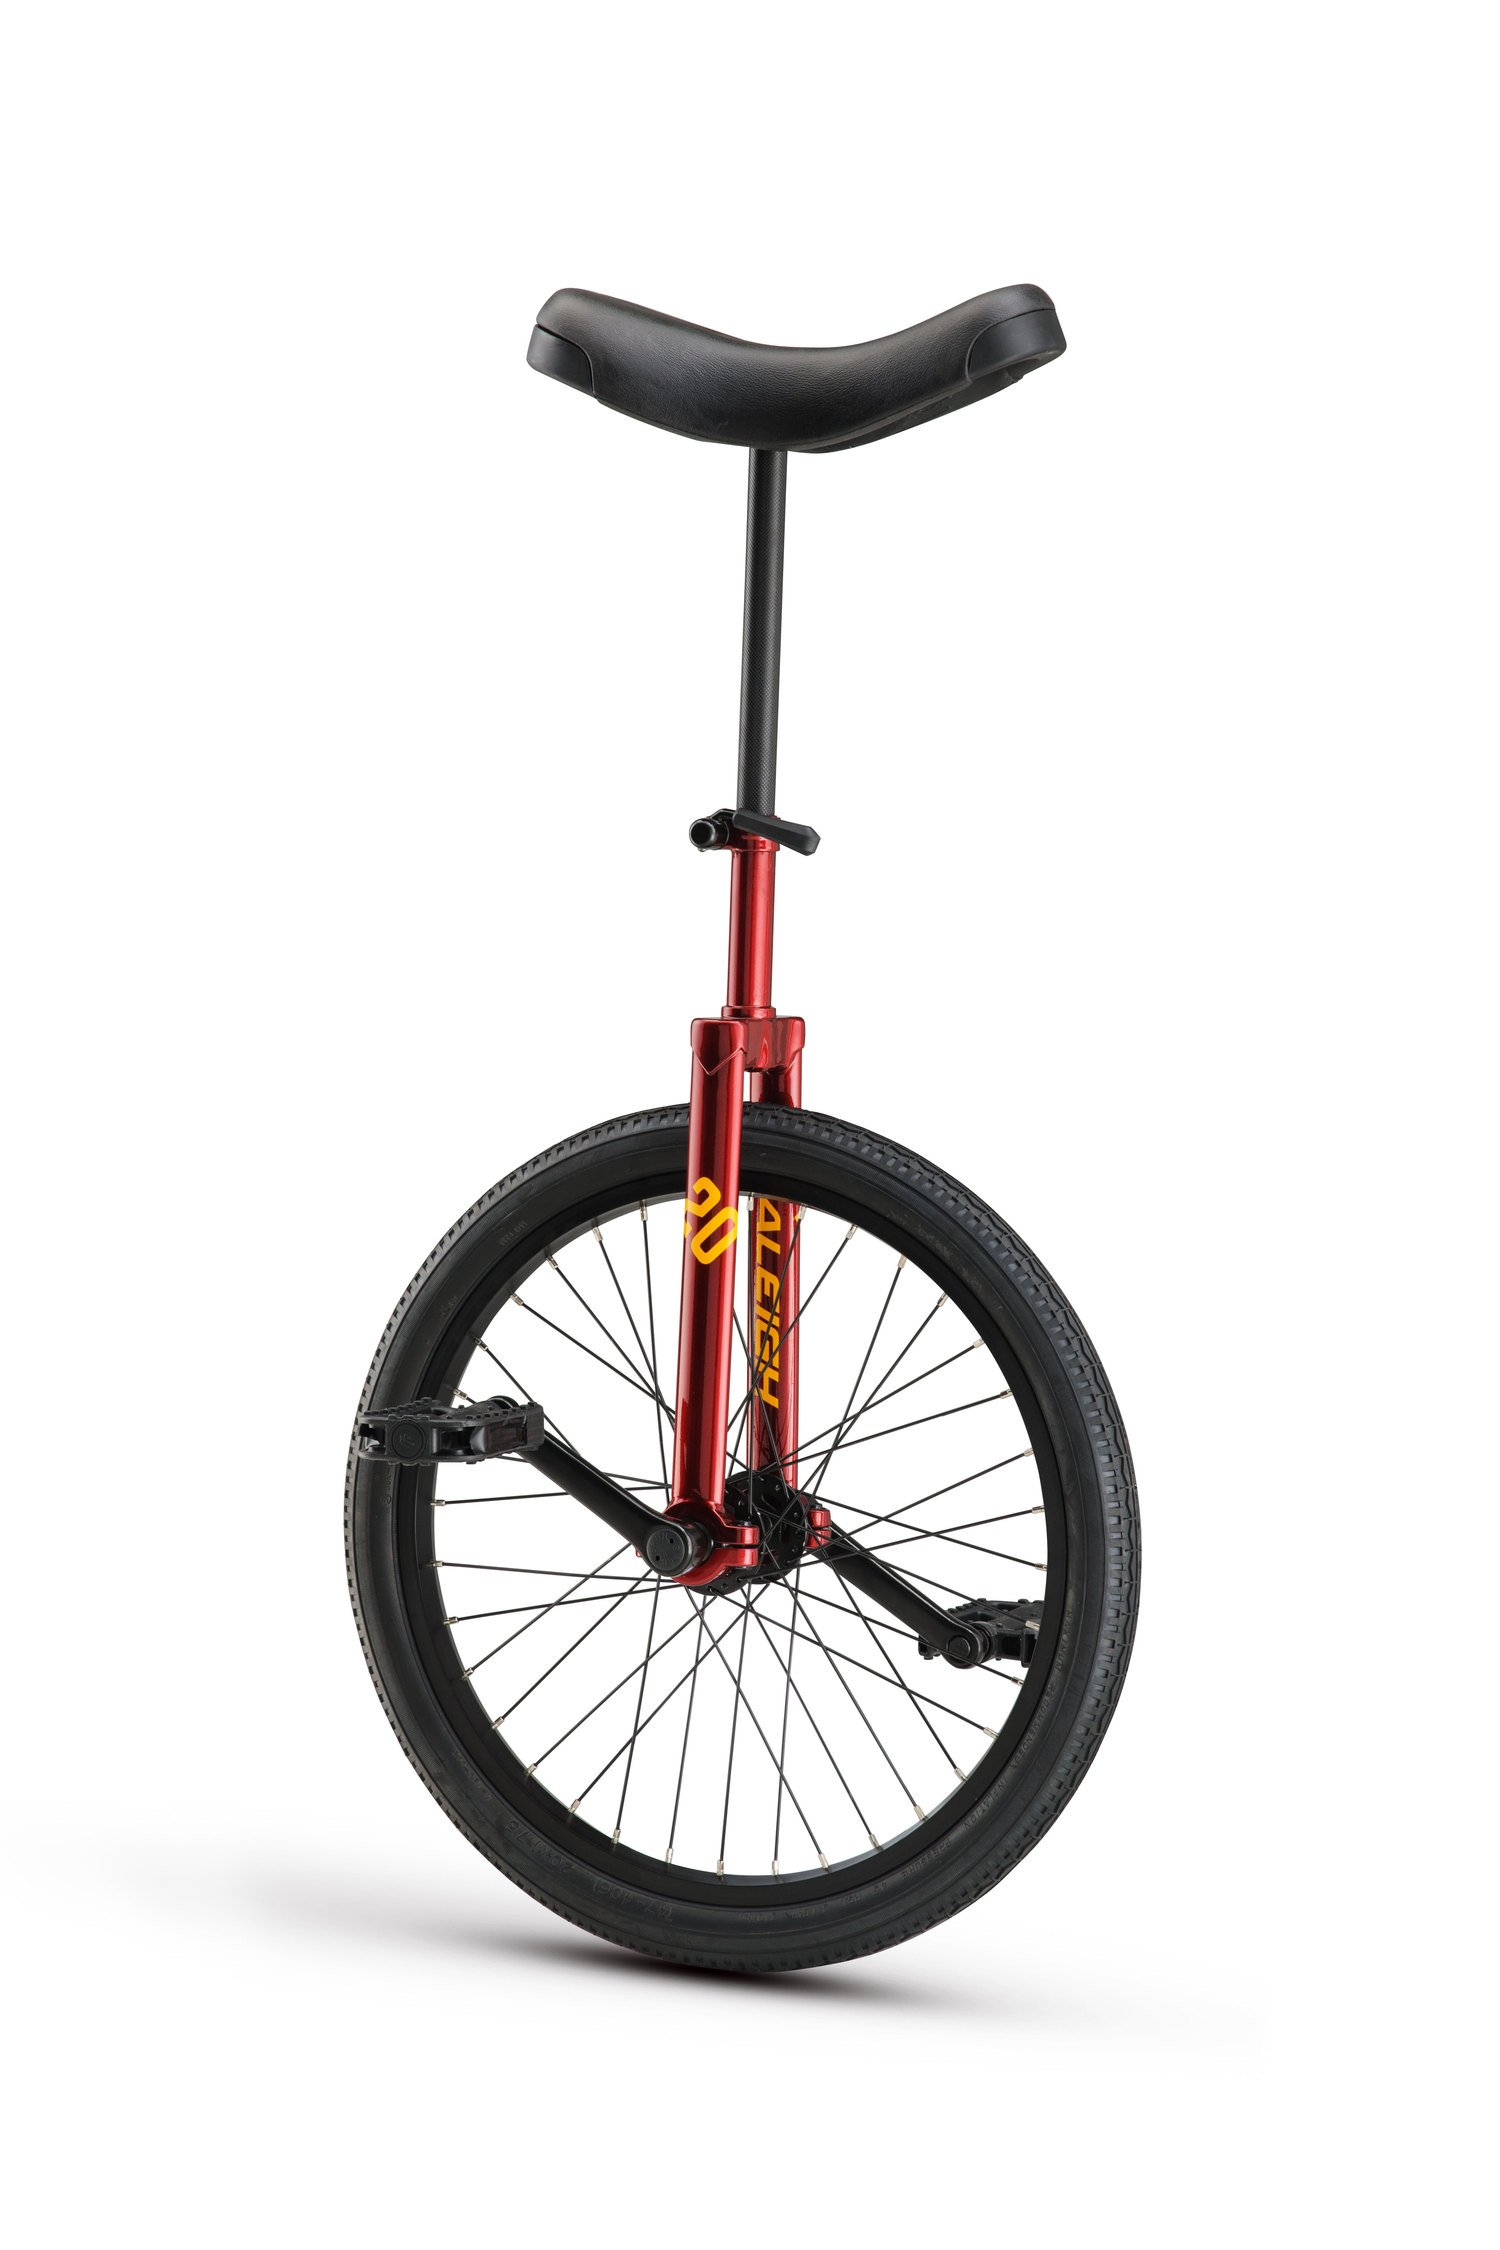 RALEIGH Unistar 20, 20inch Wheel Unicycle, Red,